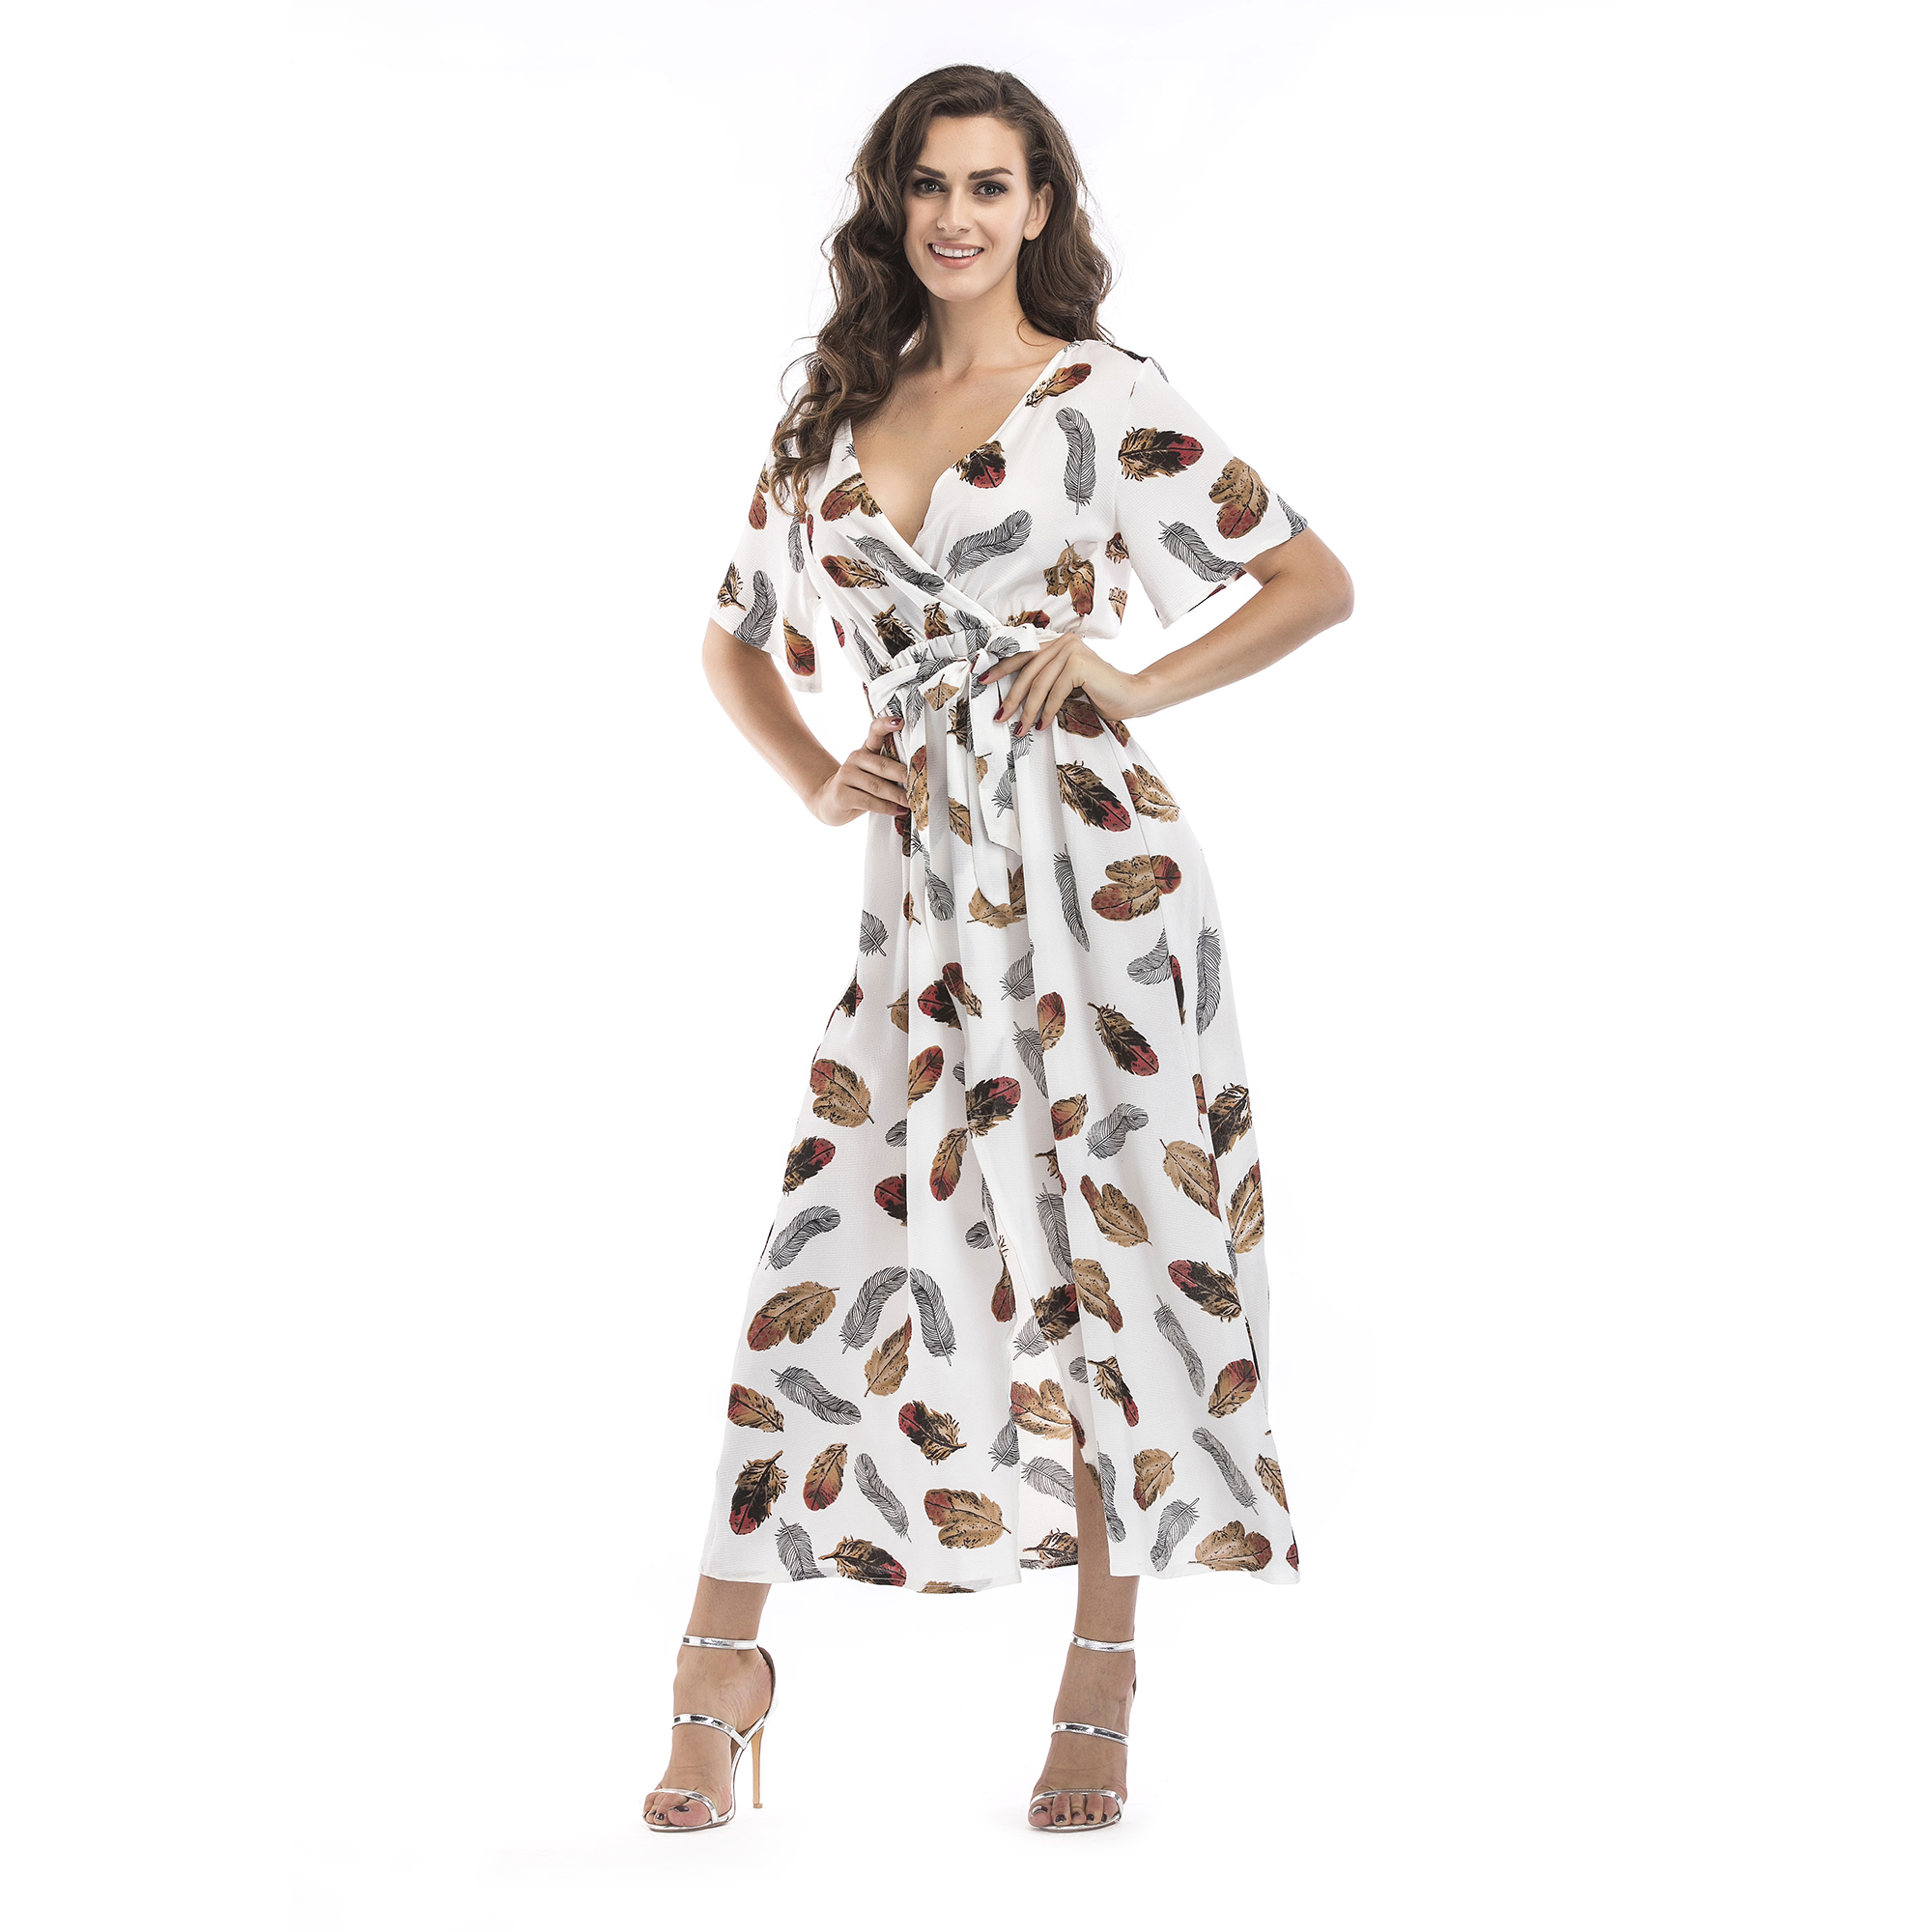 Myriadnice™ White Feather Print Long Dress